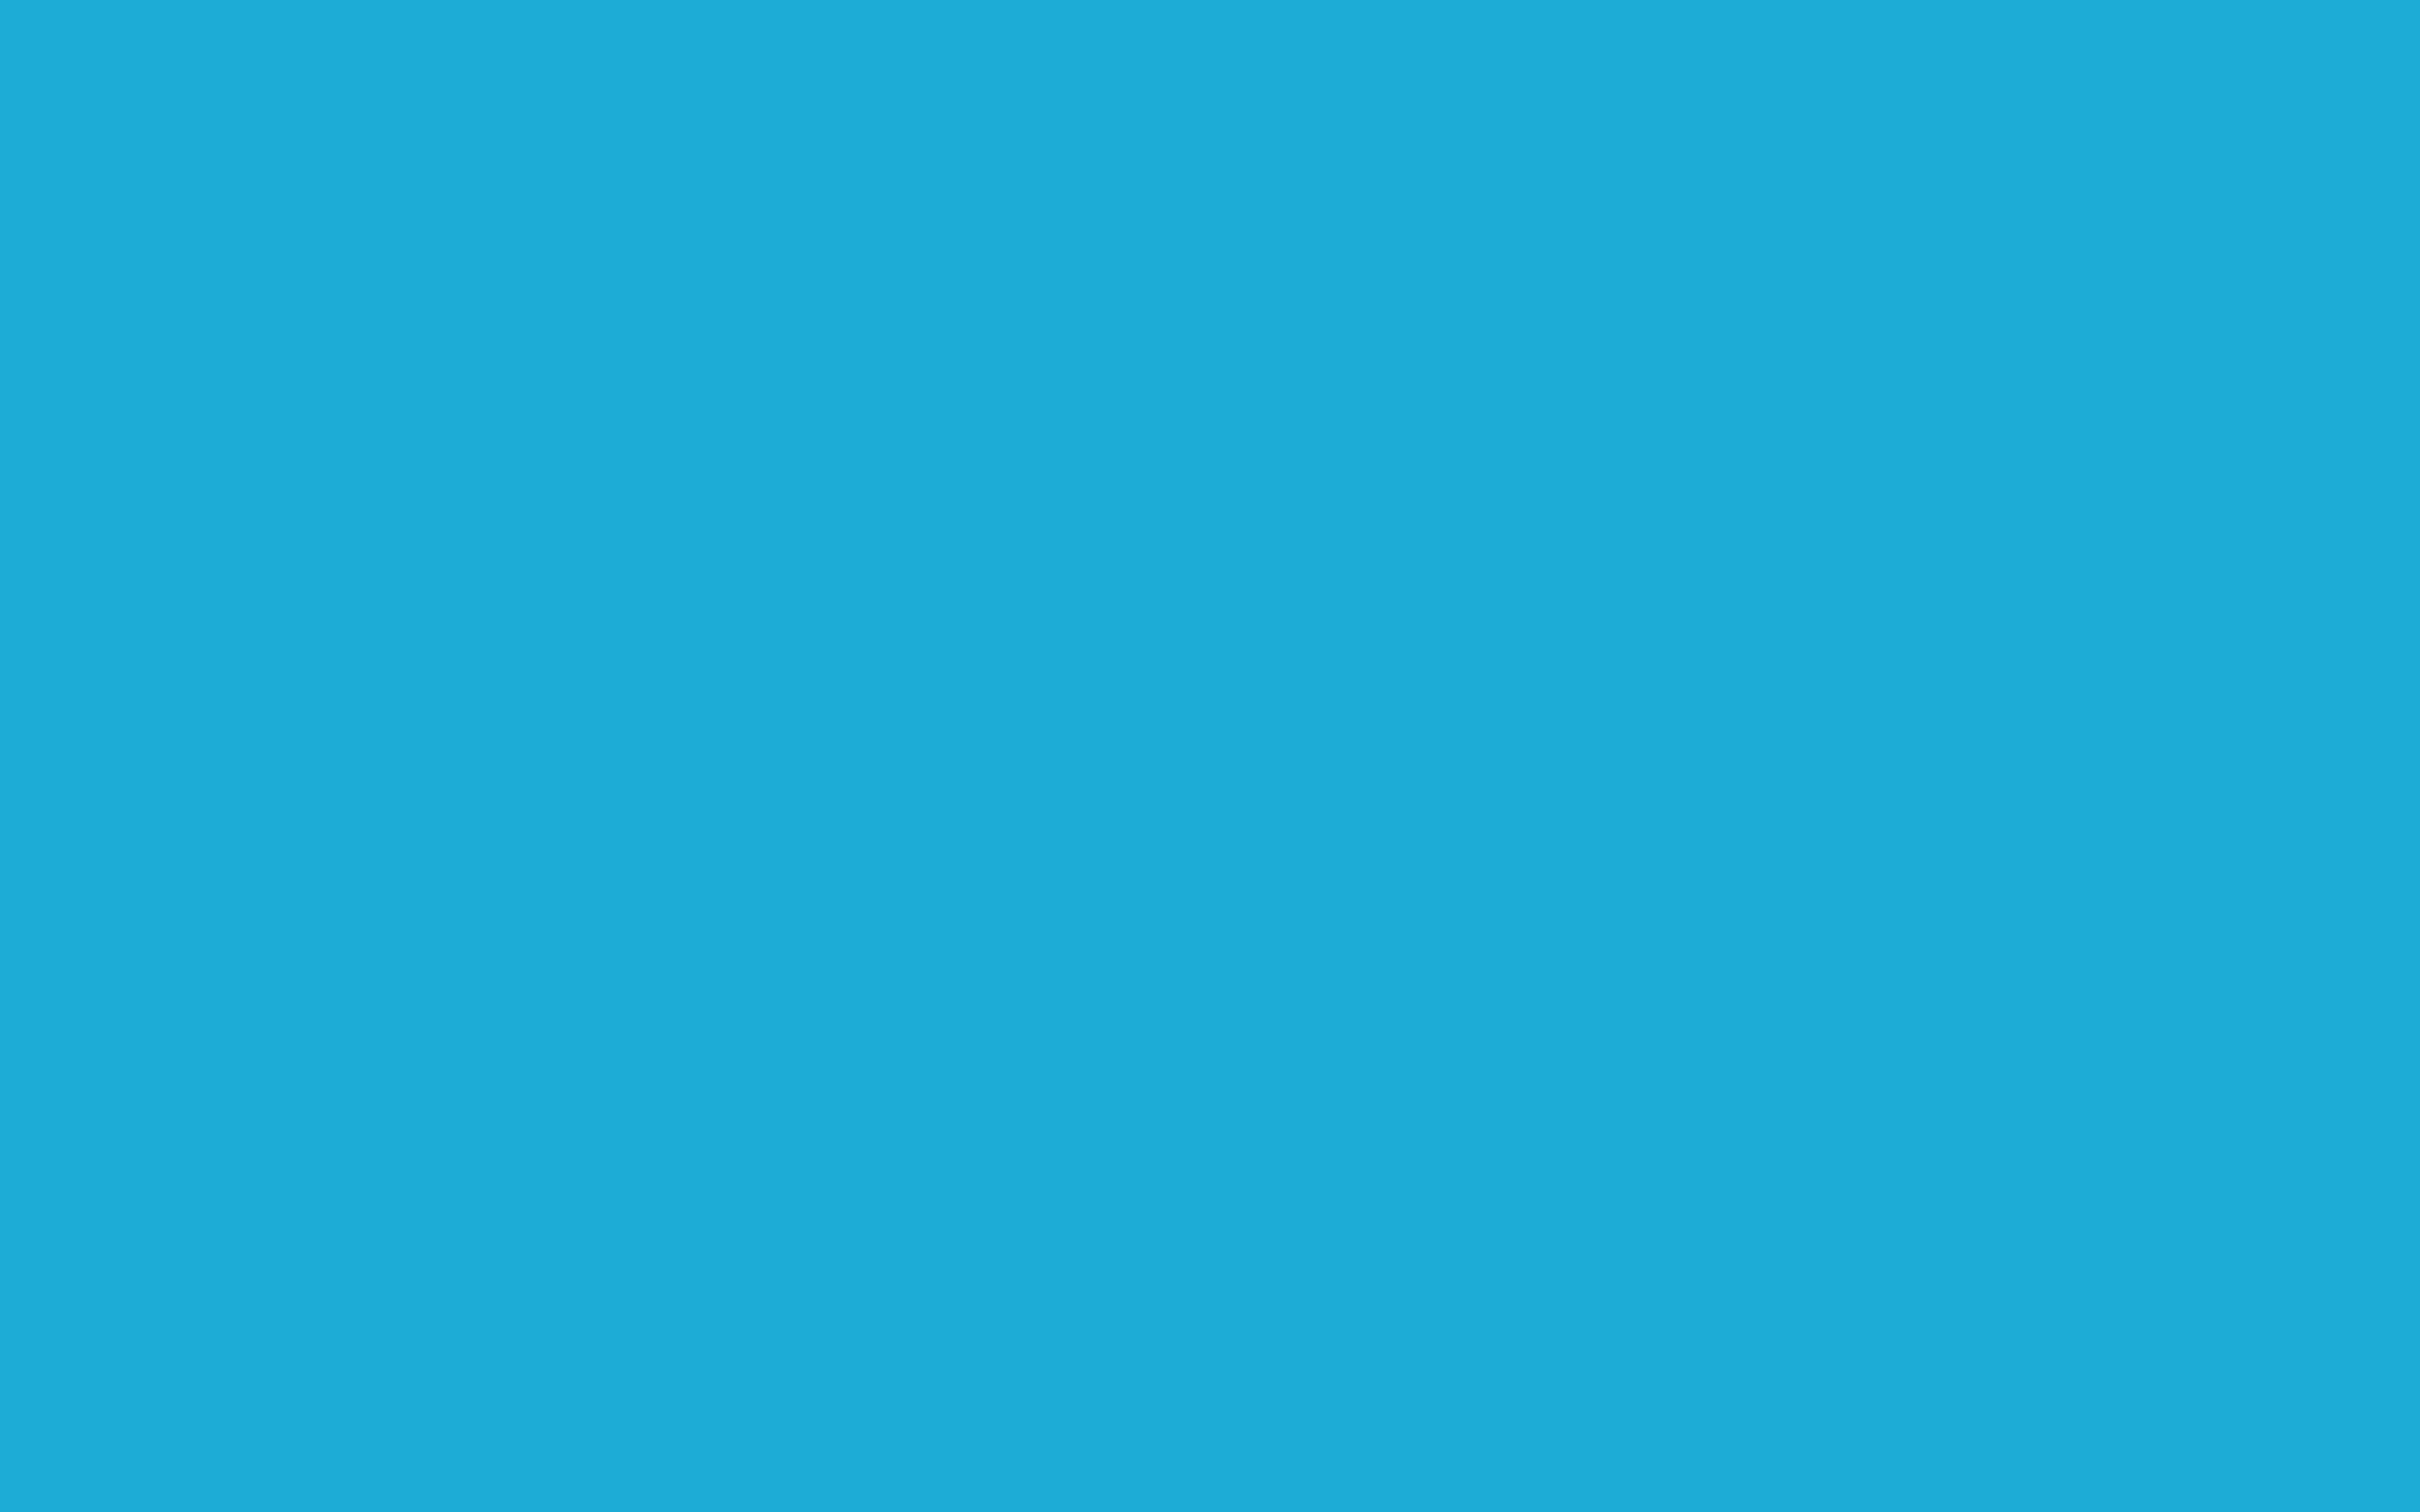 2560x1600 Bright Cerulean Solid Color Background